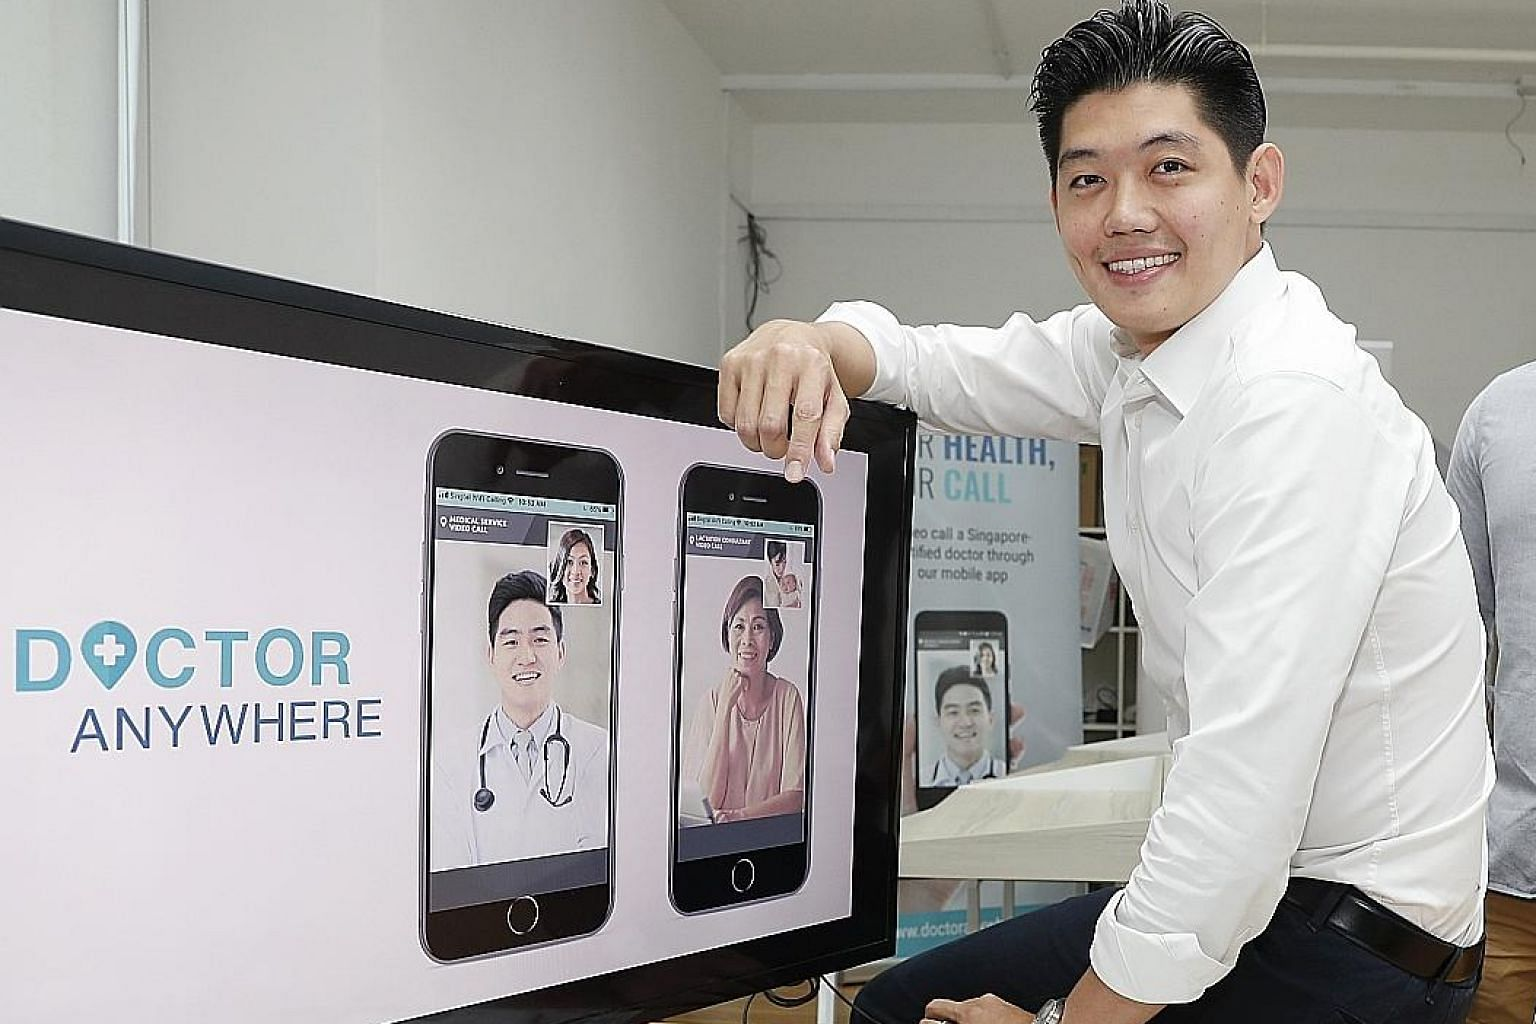 Start-up Doctor Anywhere was founded by Mr Lim Wai Mun. It offers a range of services - such as consultations, claims management, appointment booking and wellness shopping - in a single app.